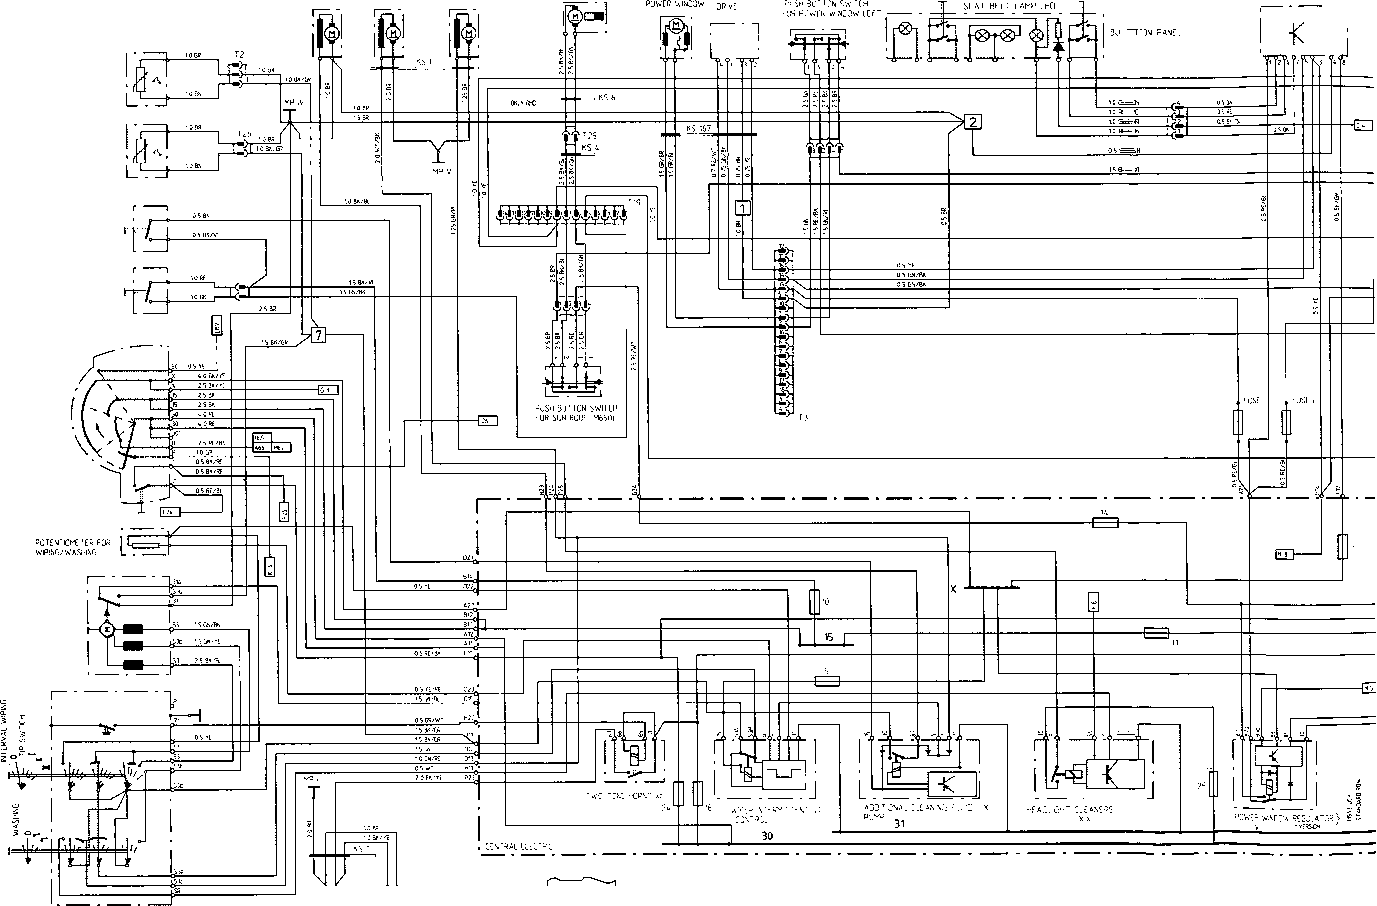 1977 porsche wiring diagram